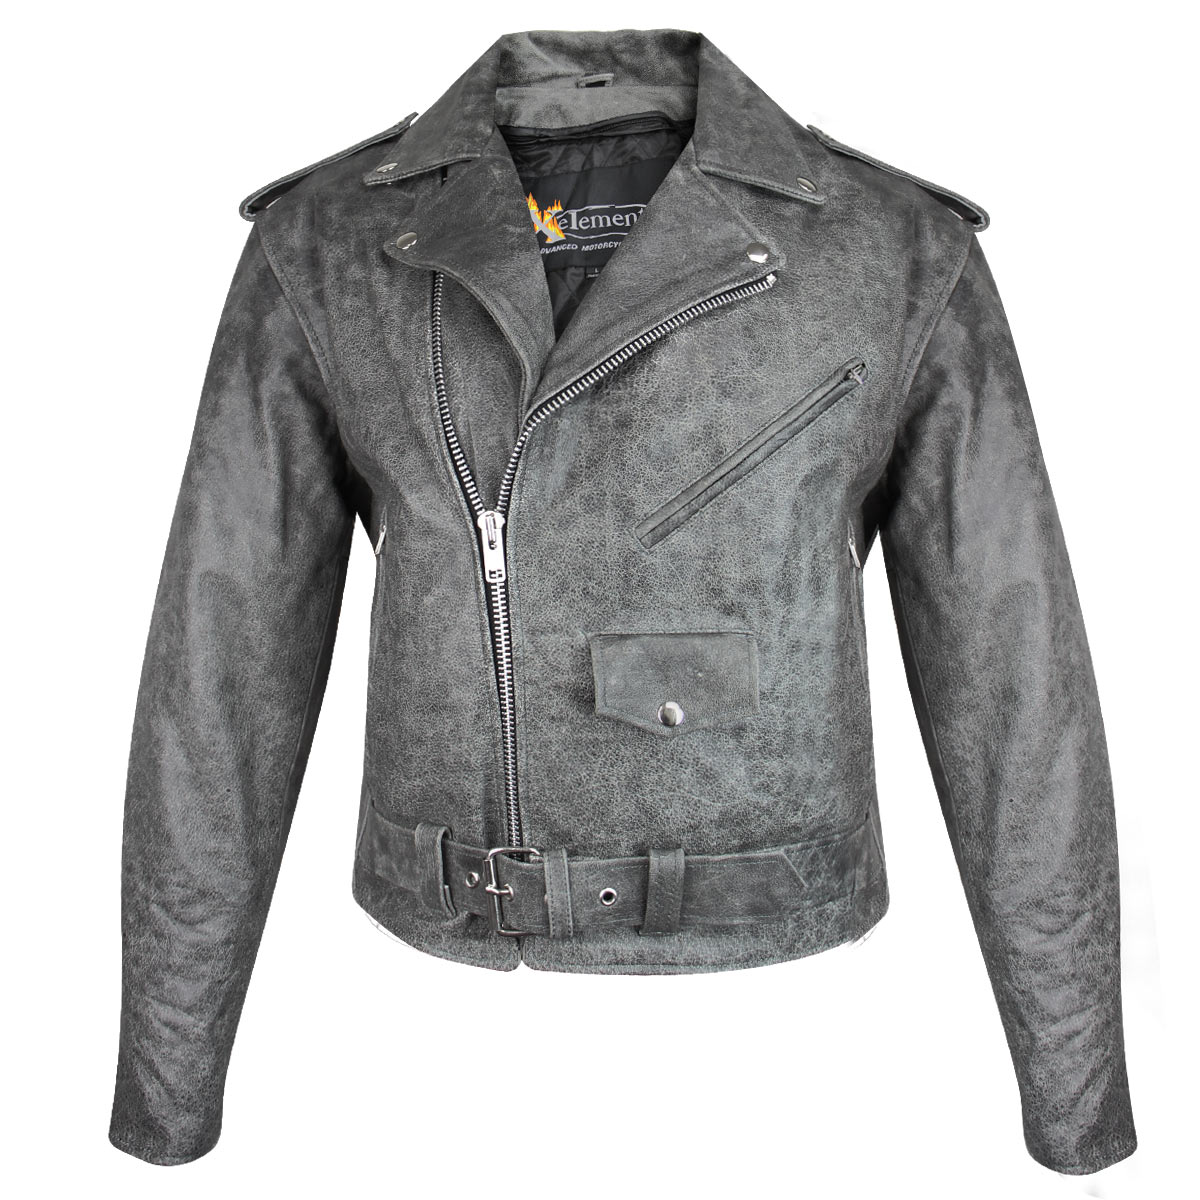 Xelement B7149 Classic Mens Distressed Gray Leather Jacket with Gun Pockets